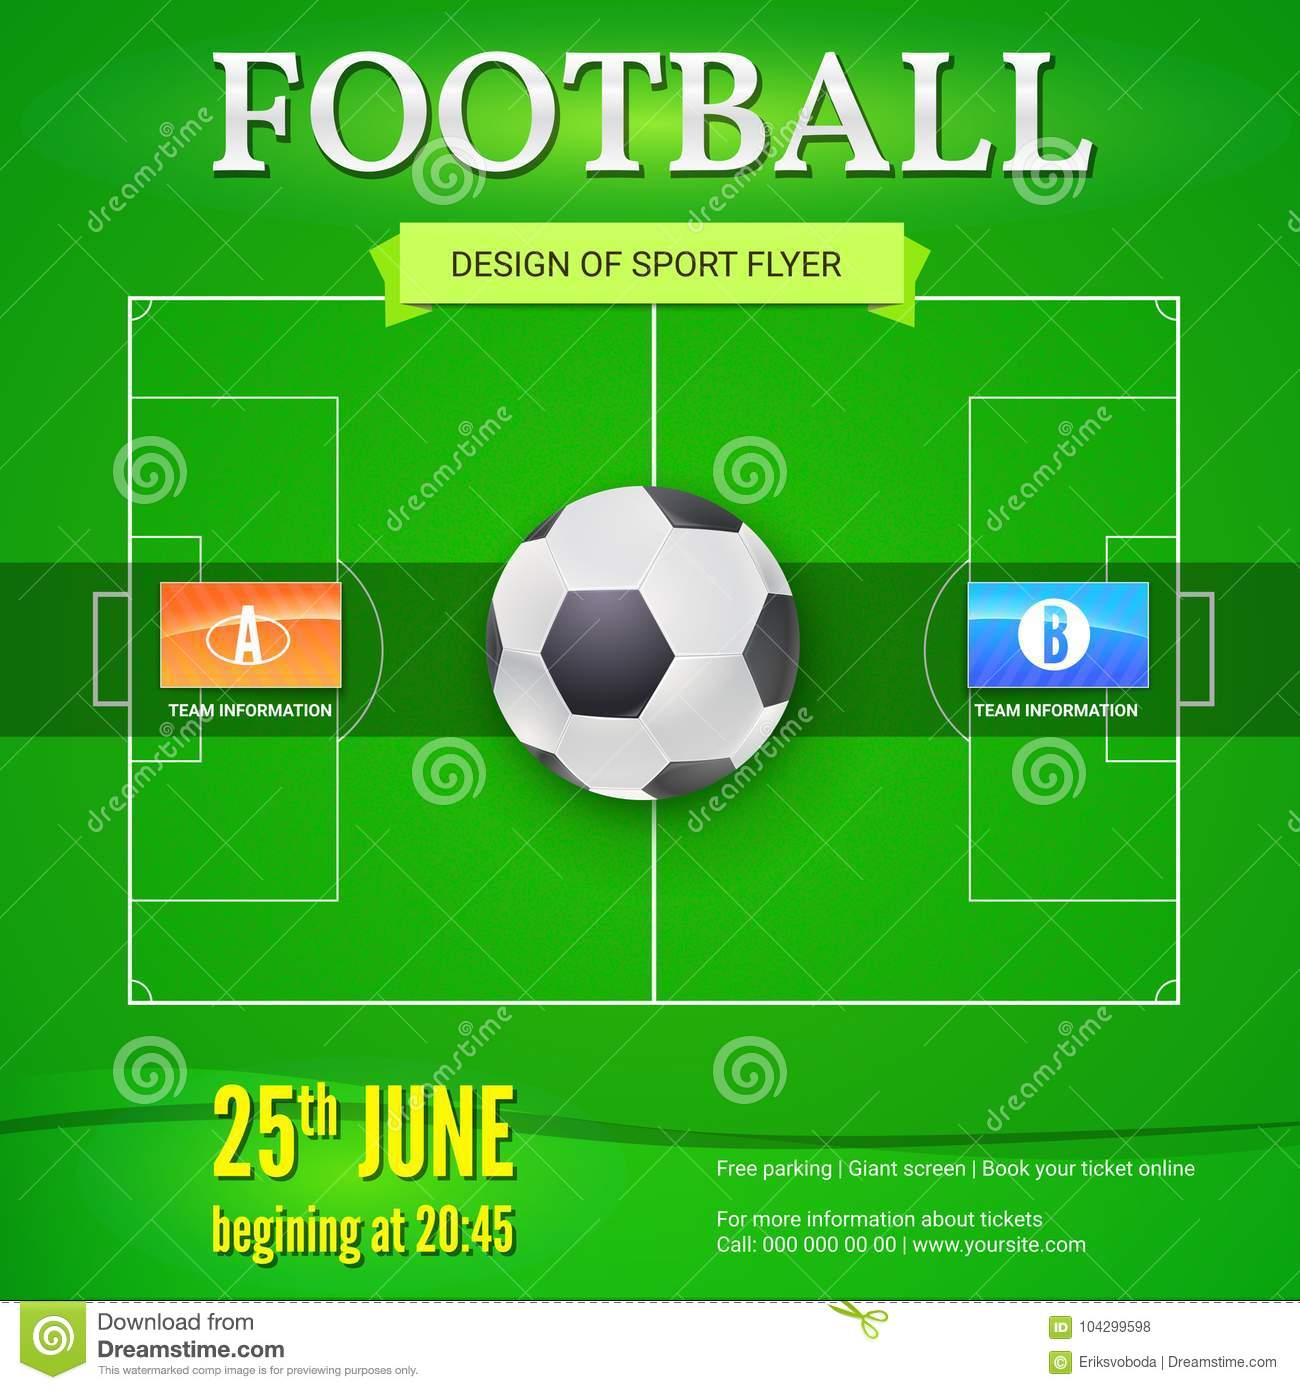 Football Or Soccer Banner With Text Design Template For Game Tournament Football Ball Above Green Field Top View Stock Vector Illustration Of Modern Green 104299598